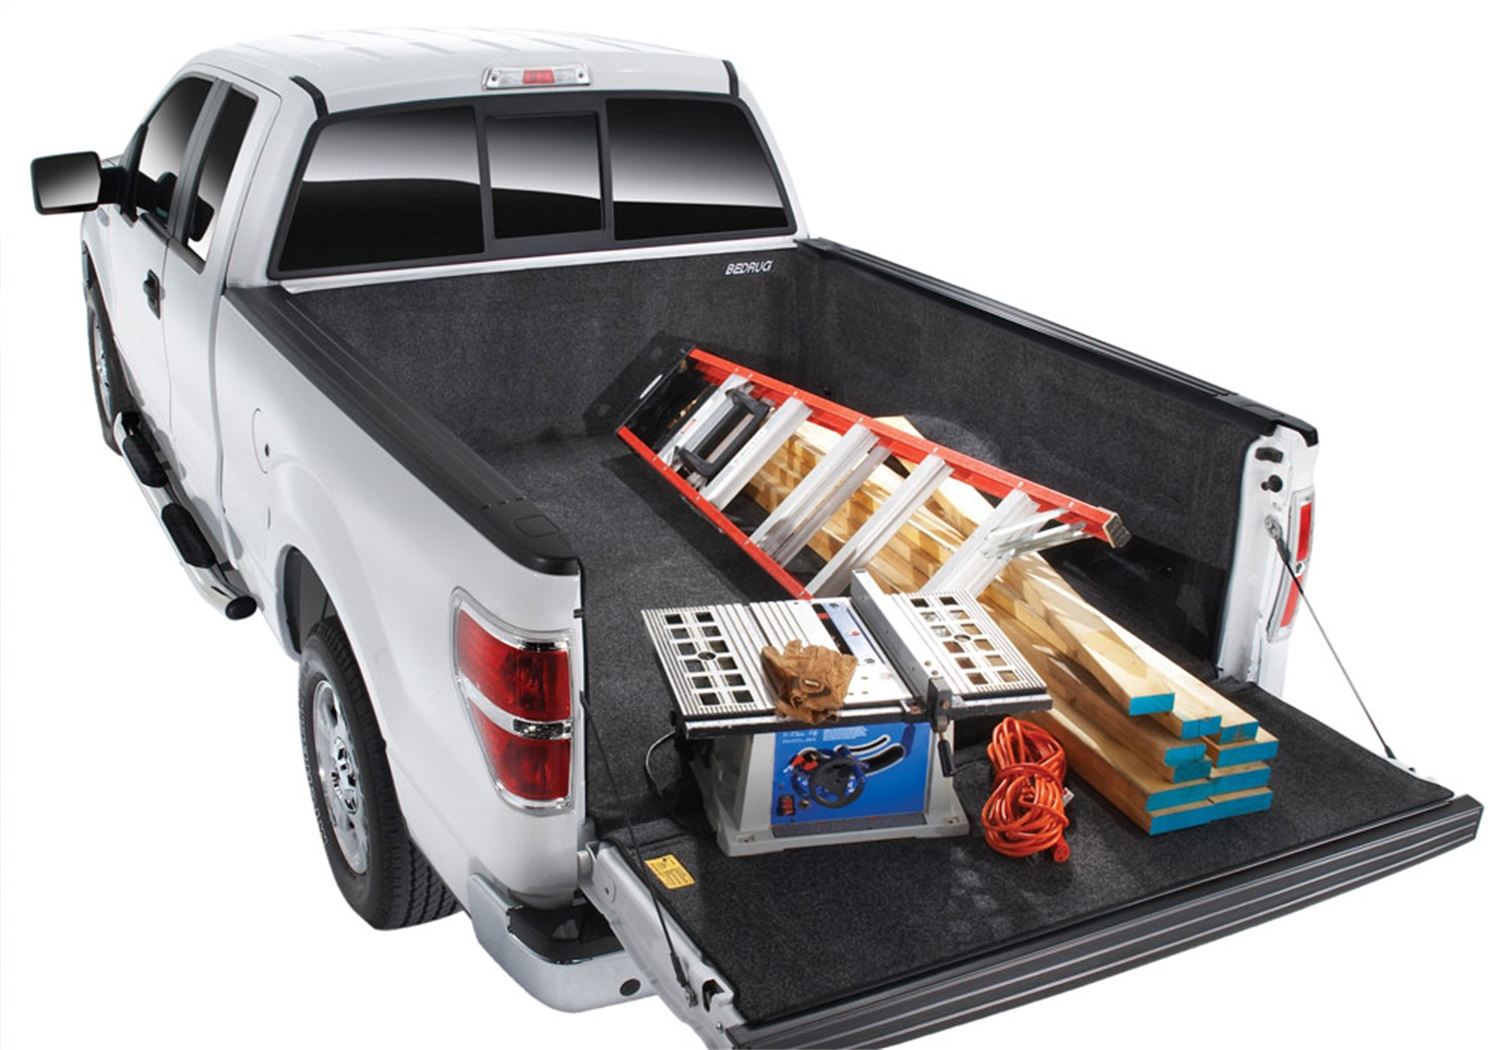 BedRugr Complete Truck Bed Liner, 3/4 in. Thick Floor, 1/4 in. Thick Side Walls, Incl. Bulkhead And Tailgate